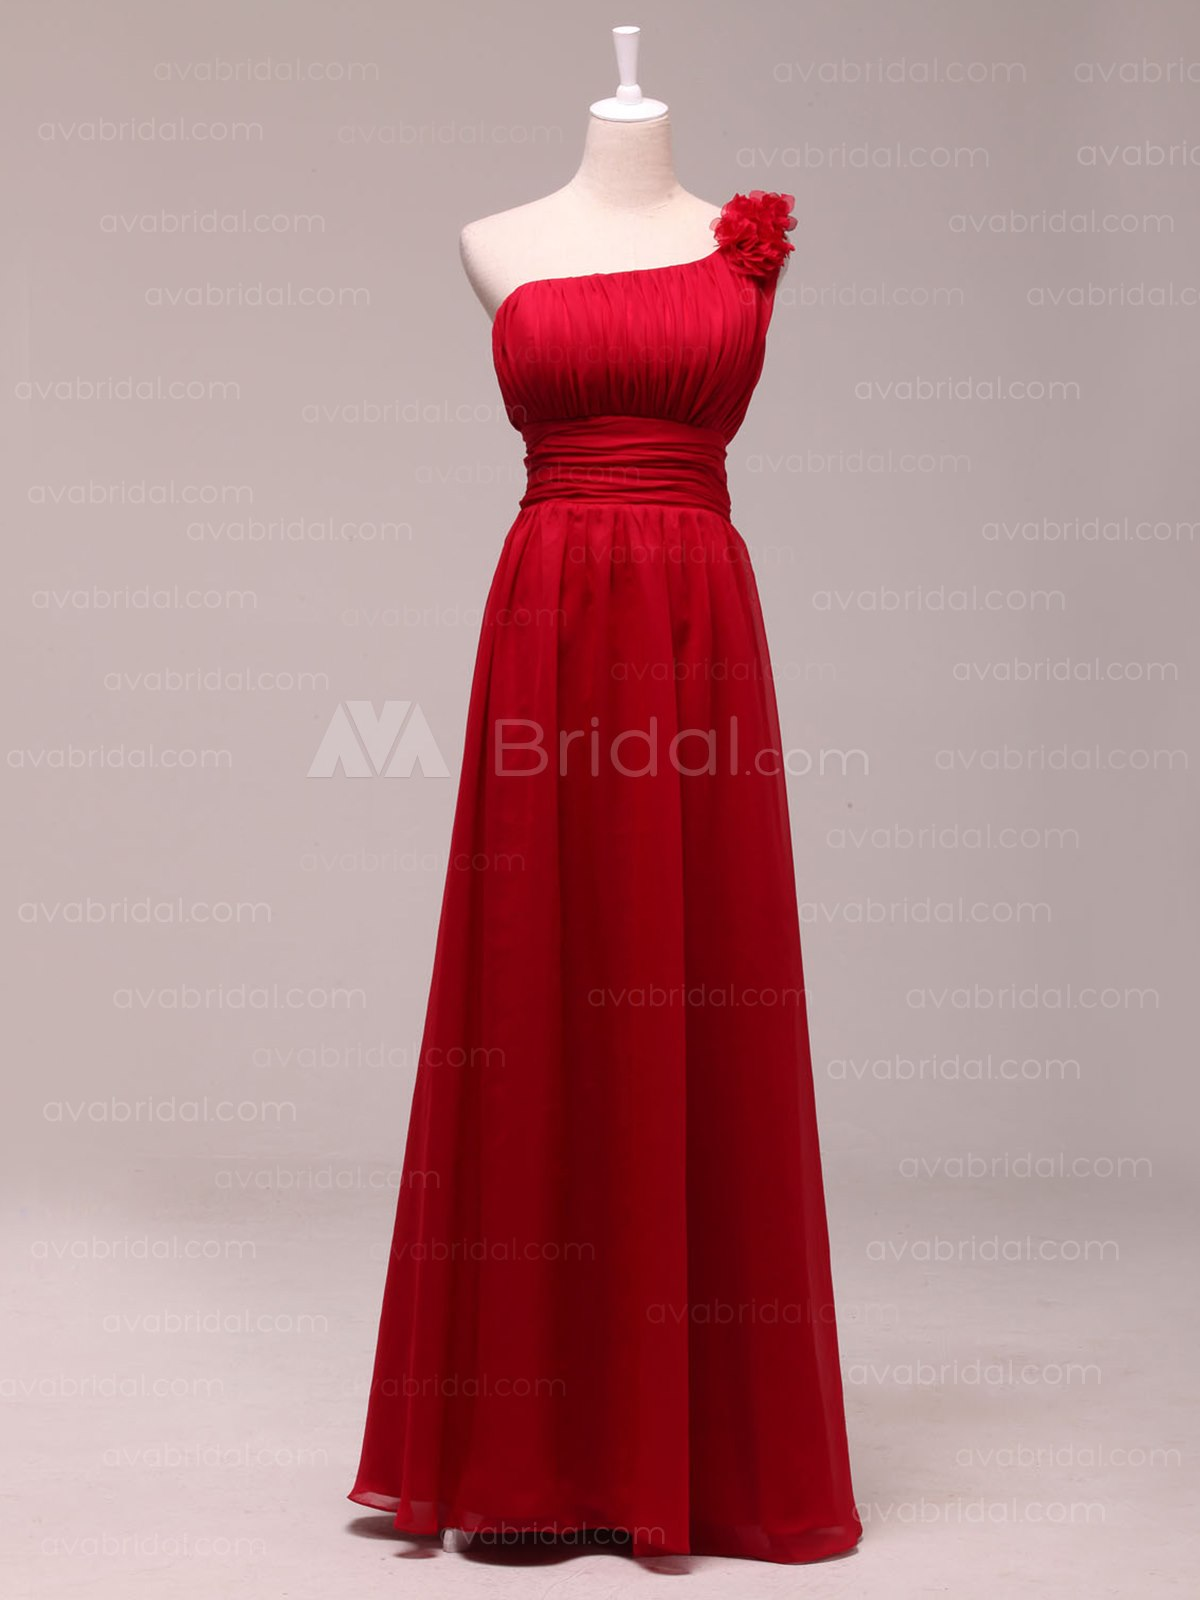 Chic Asymmetrical Neckline Chiffon Bridesmaid Dress B461-Front